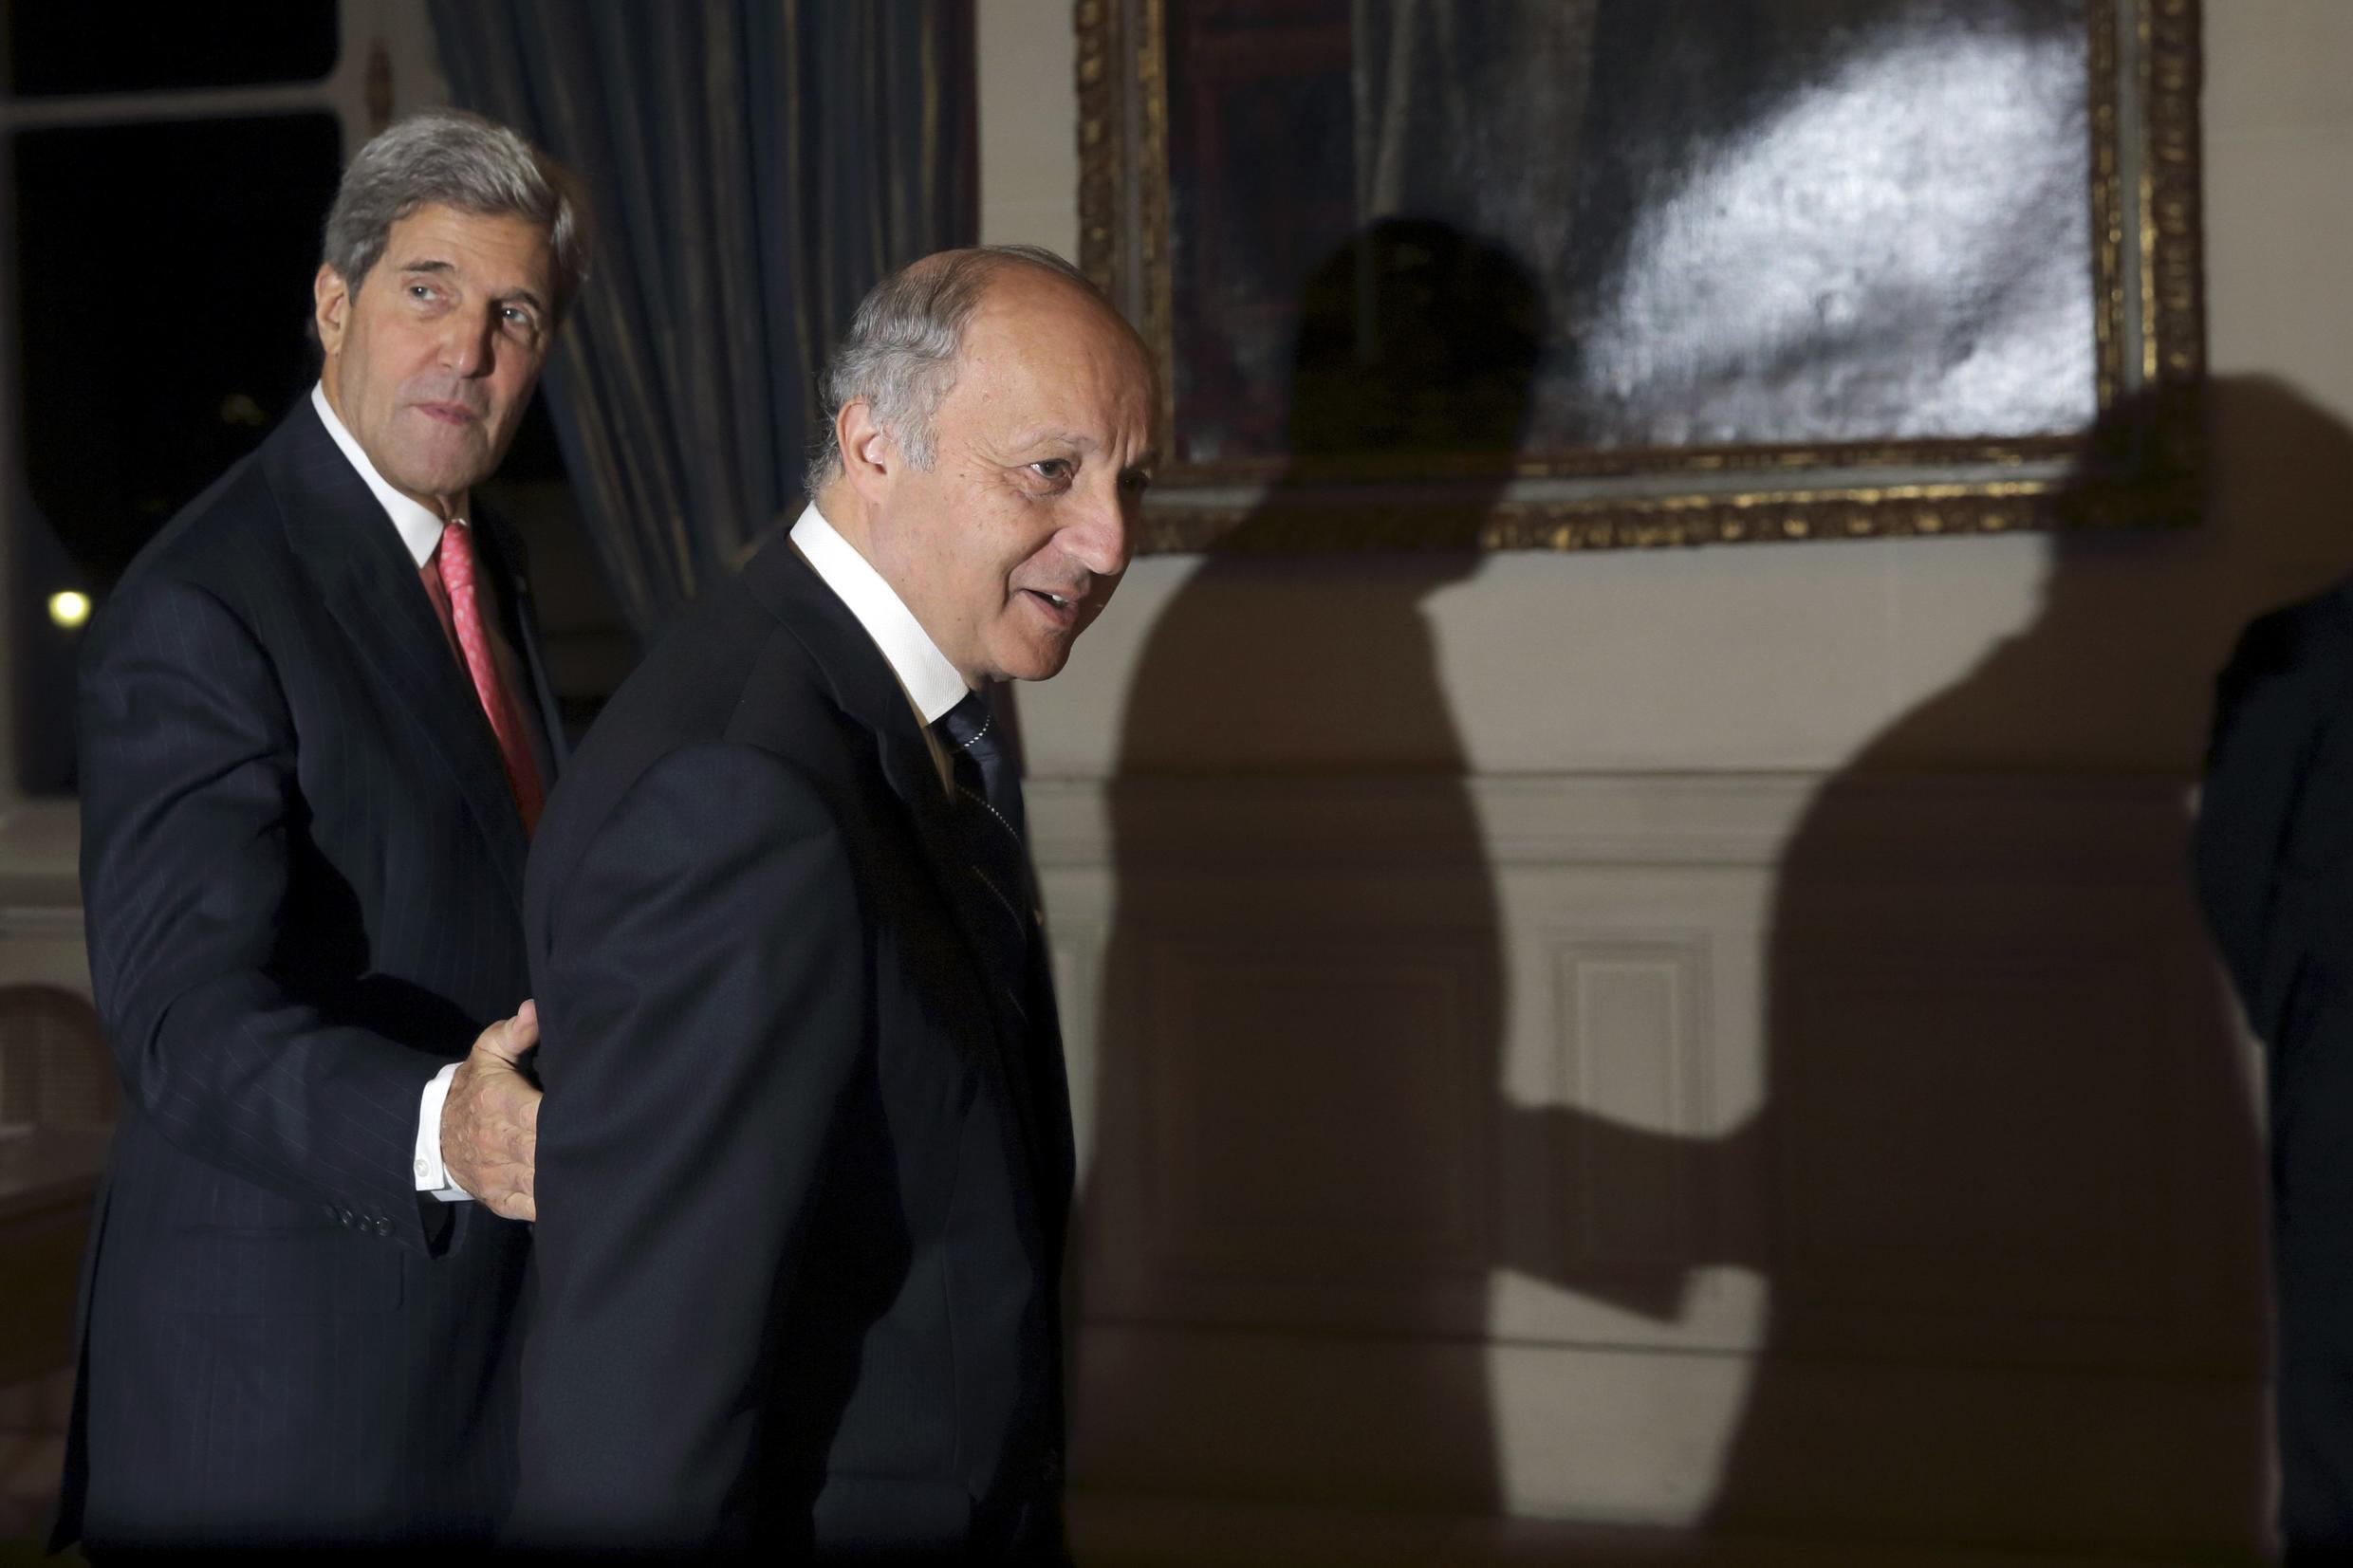 US Secretary of State John Kerry with French Foreign Affairs Minister Laurent Fabius on Tuesday morning